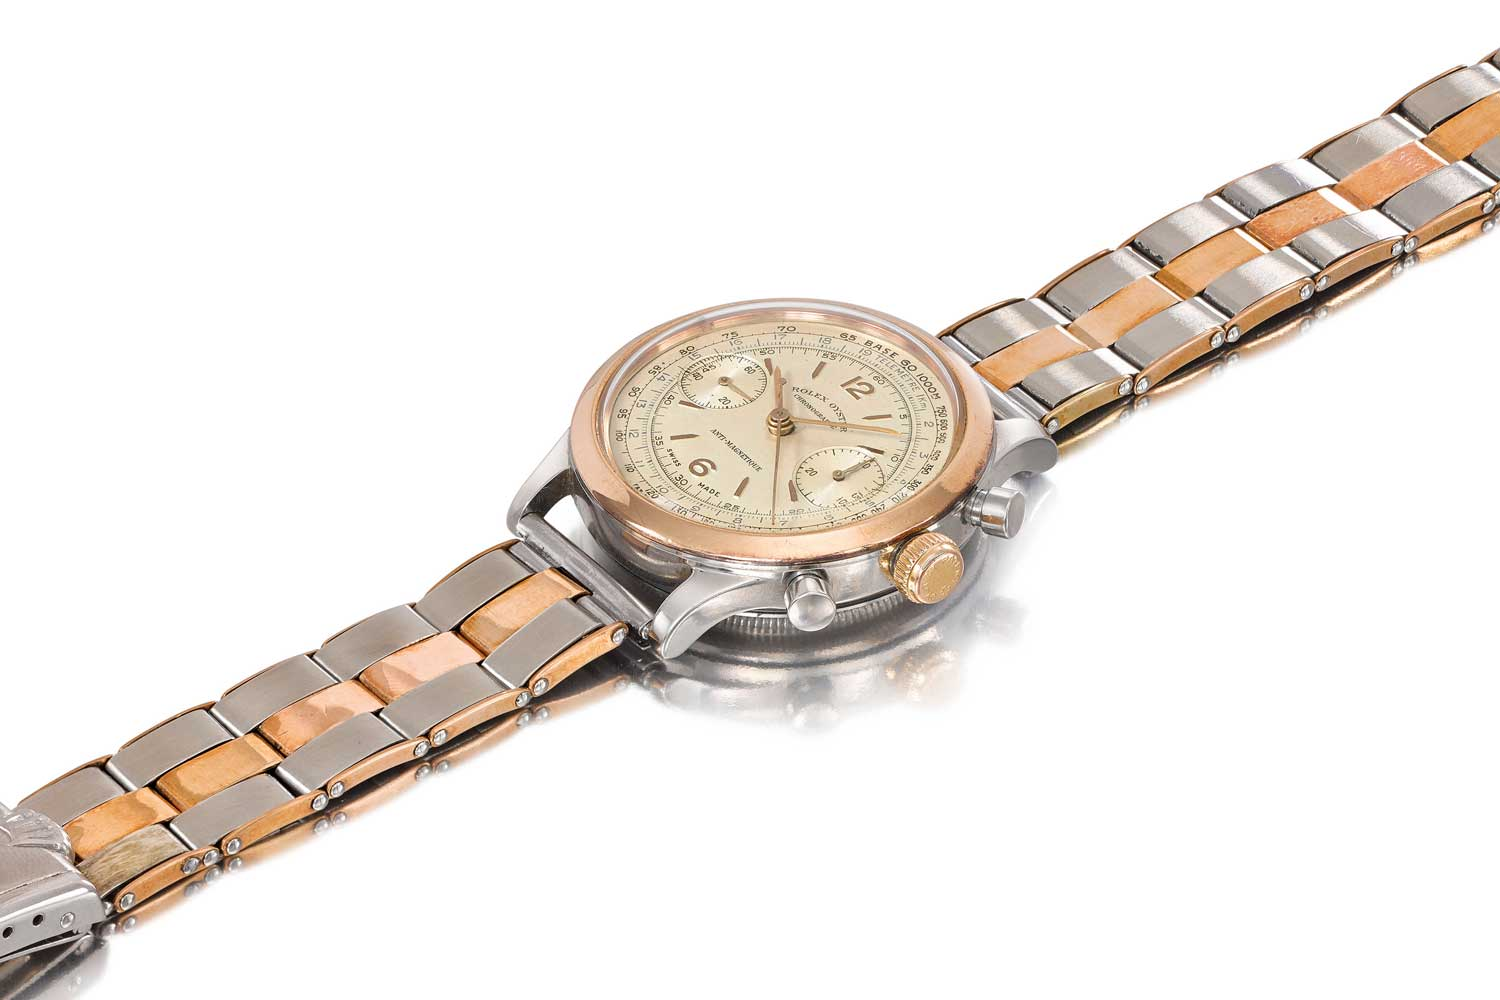 Lot 193: Rolex Stainless Steel and Pink Gold Ref. 3525 Formerly the Property of the Late Andy Warhol The Property of an Important Private Italian Collector